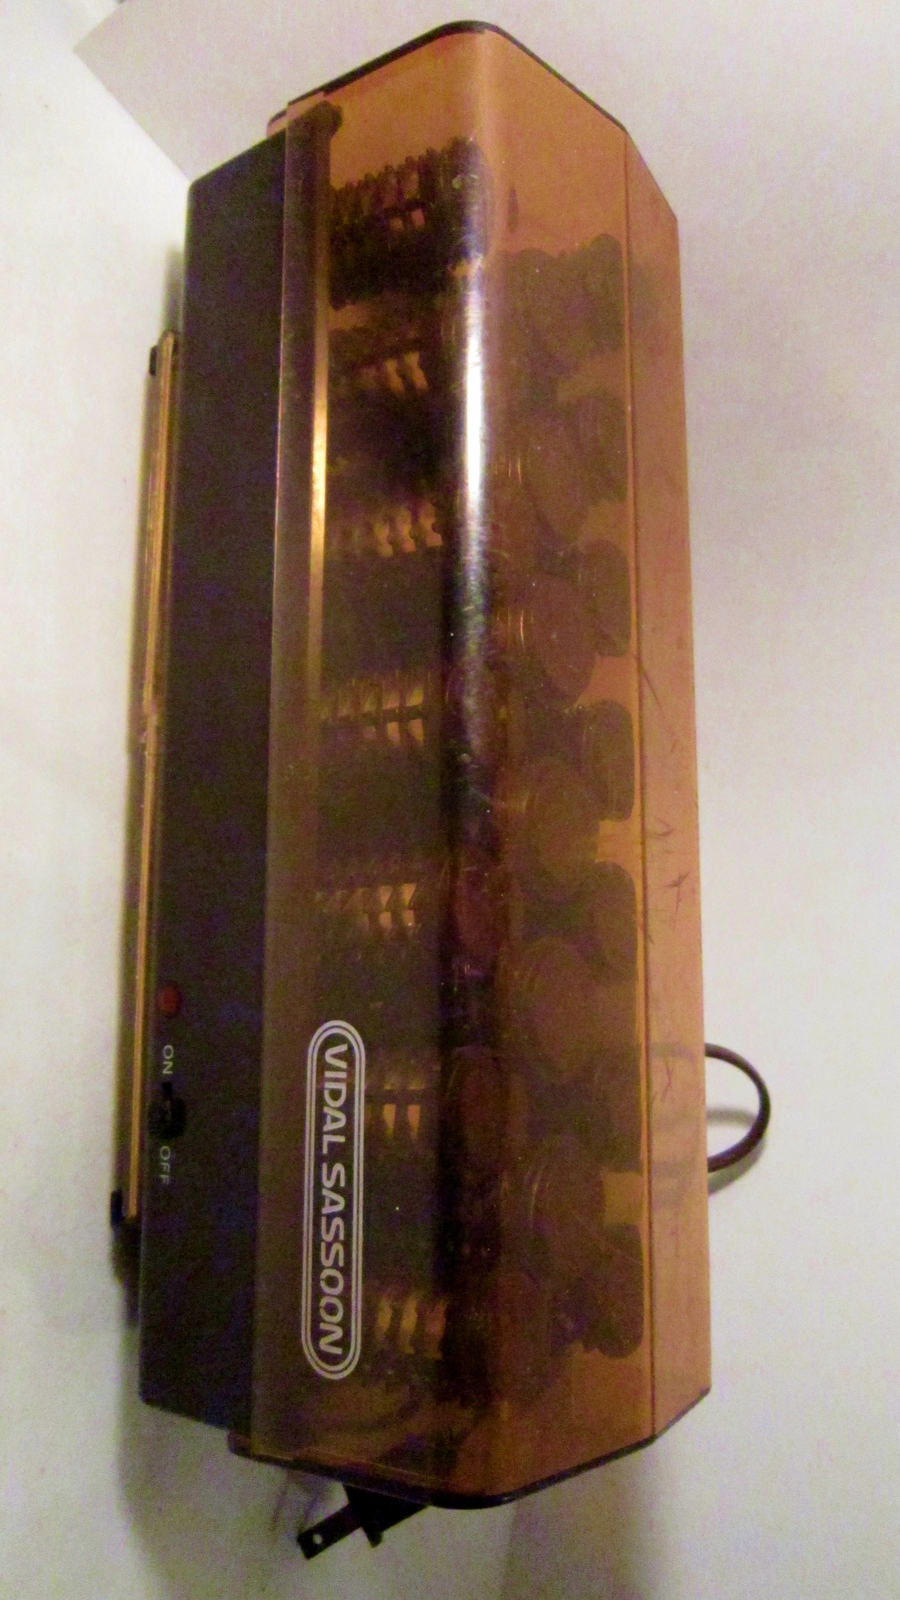 Vidal sassoon hairsetter vintage hot rollers hair curler set 01